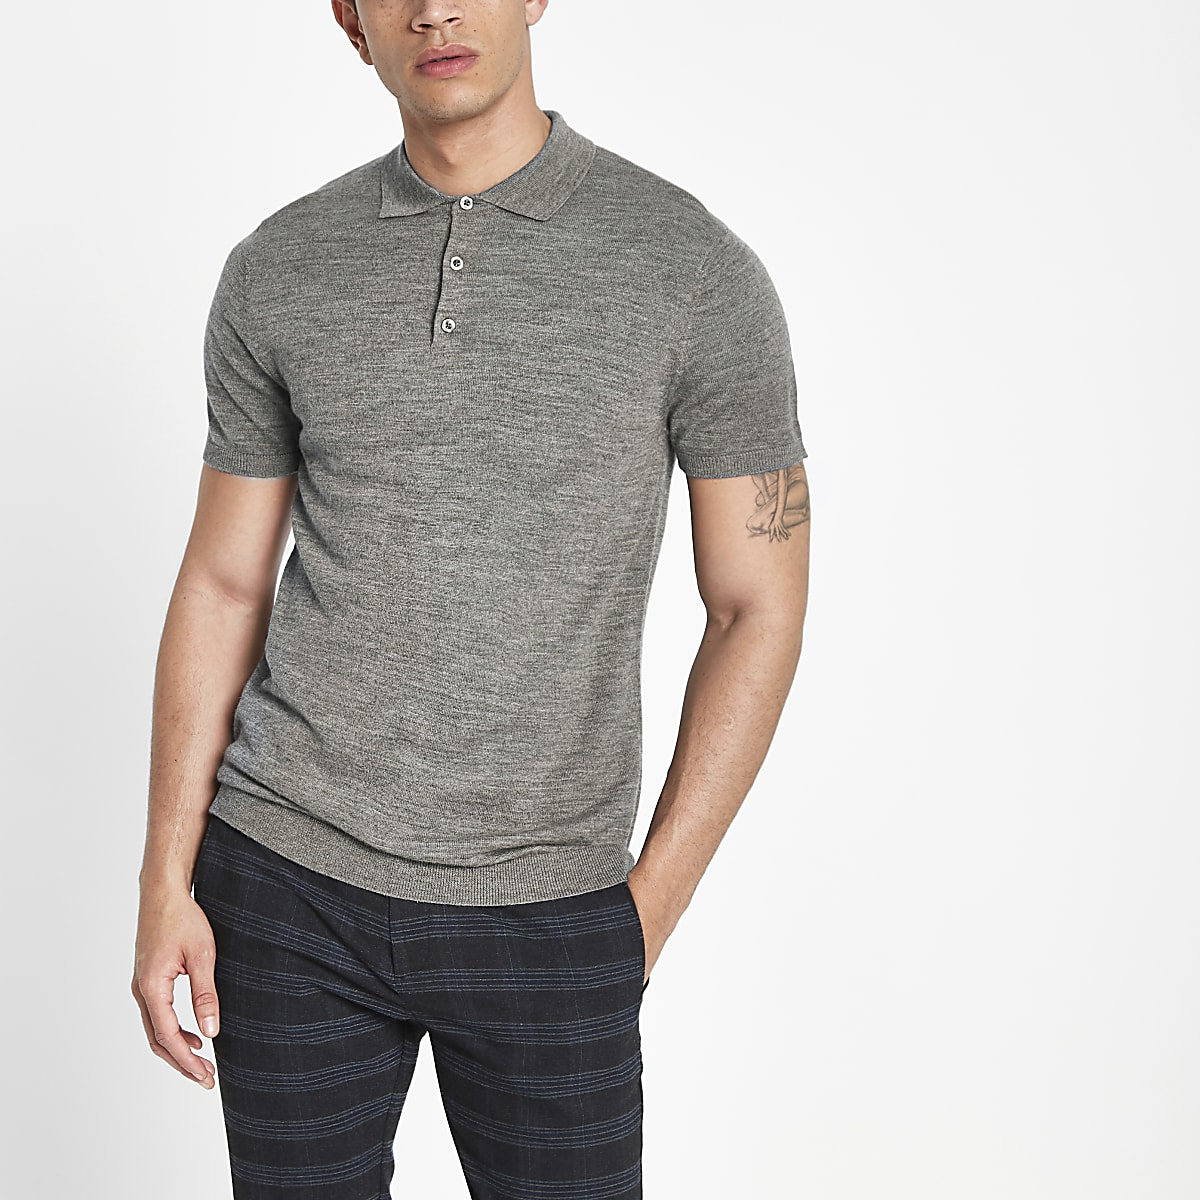 Selected Homme – Graues Polohemd